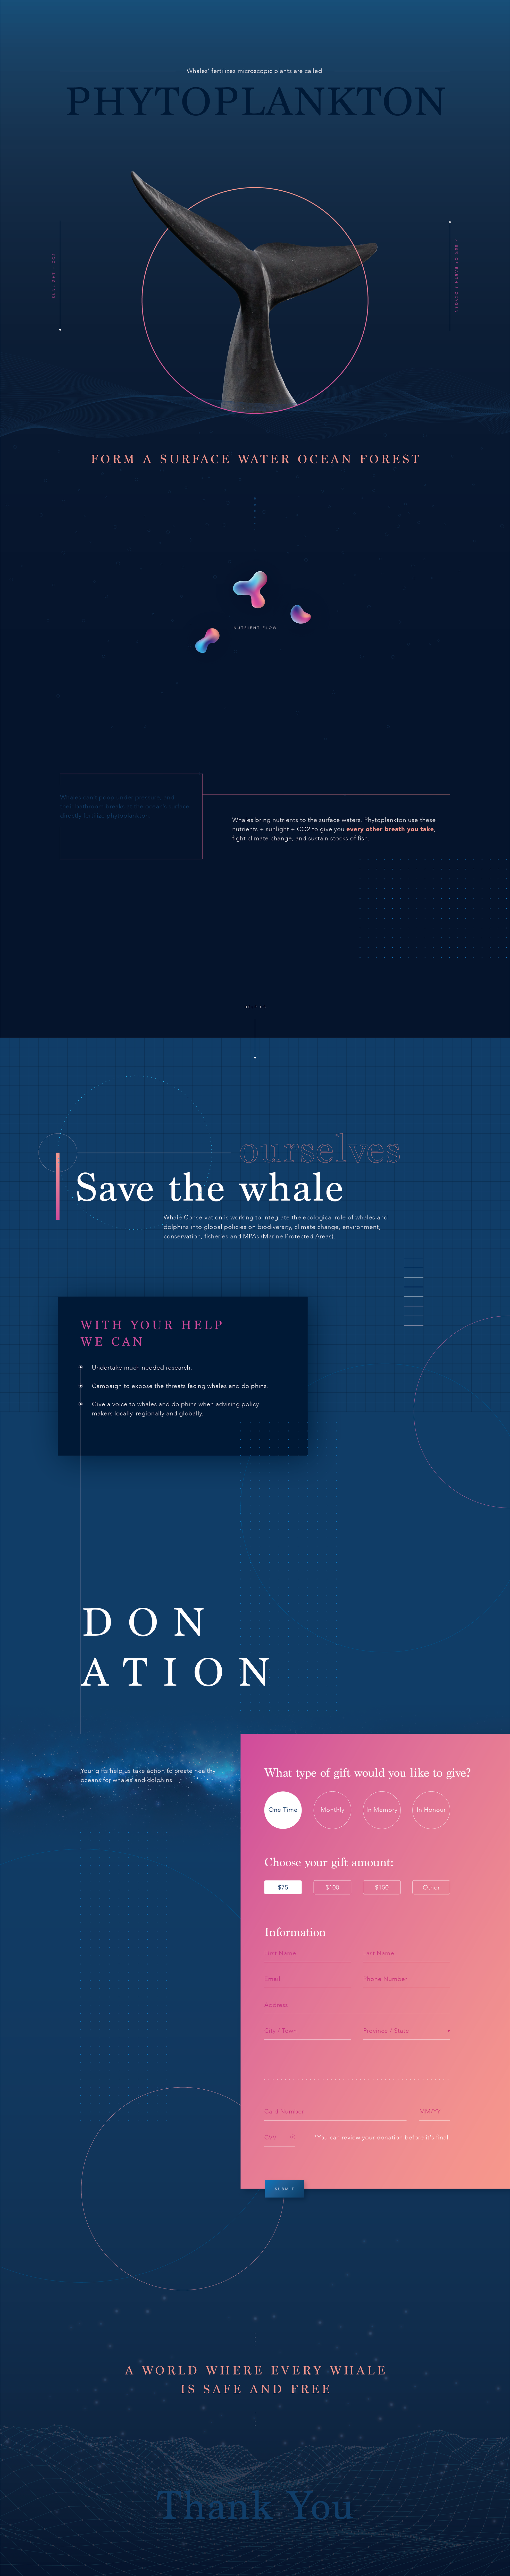 Whale Project-02.png